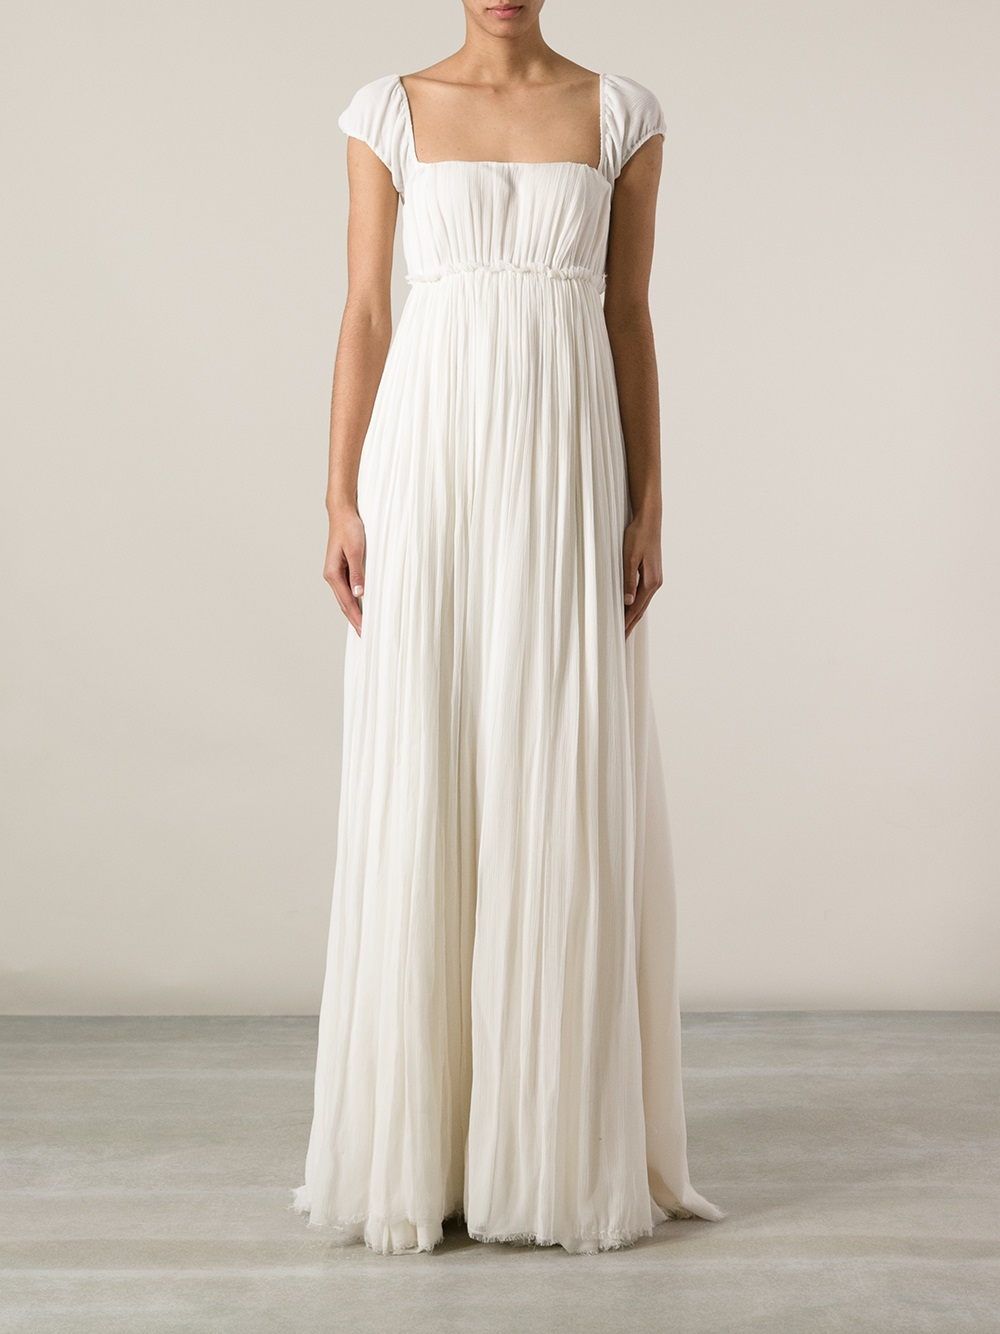 Derek lam Empire Waist Evening Gown in White | Lyst